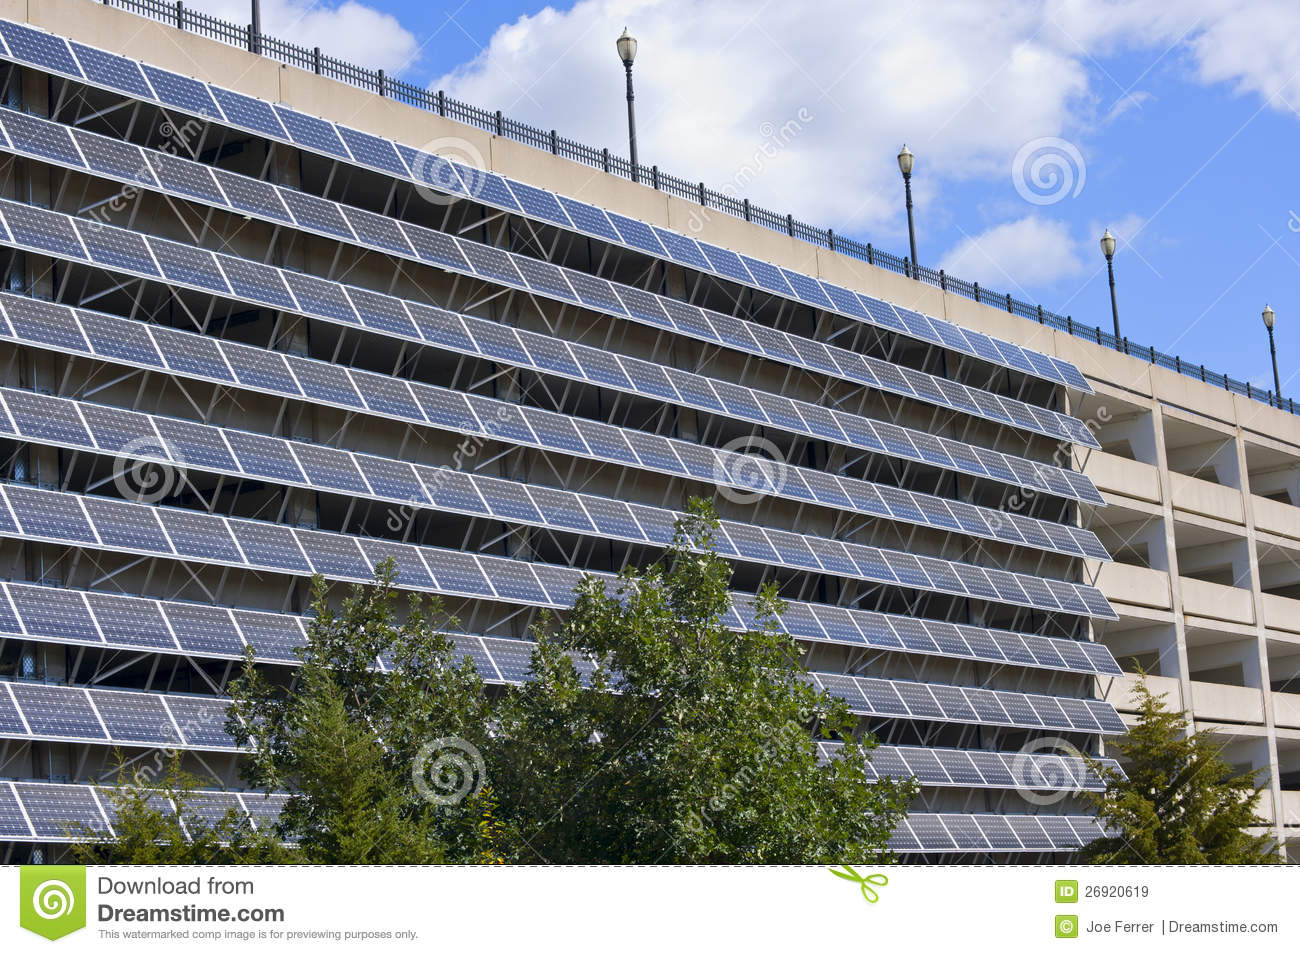 Solar Panels Parking Garage